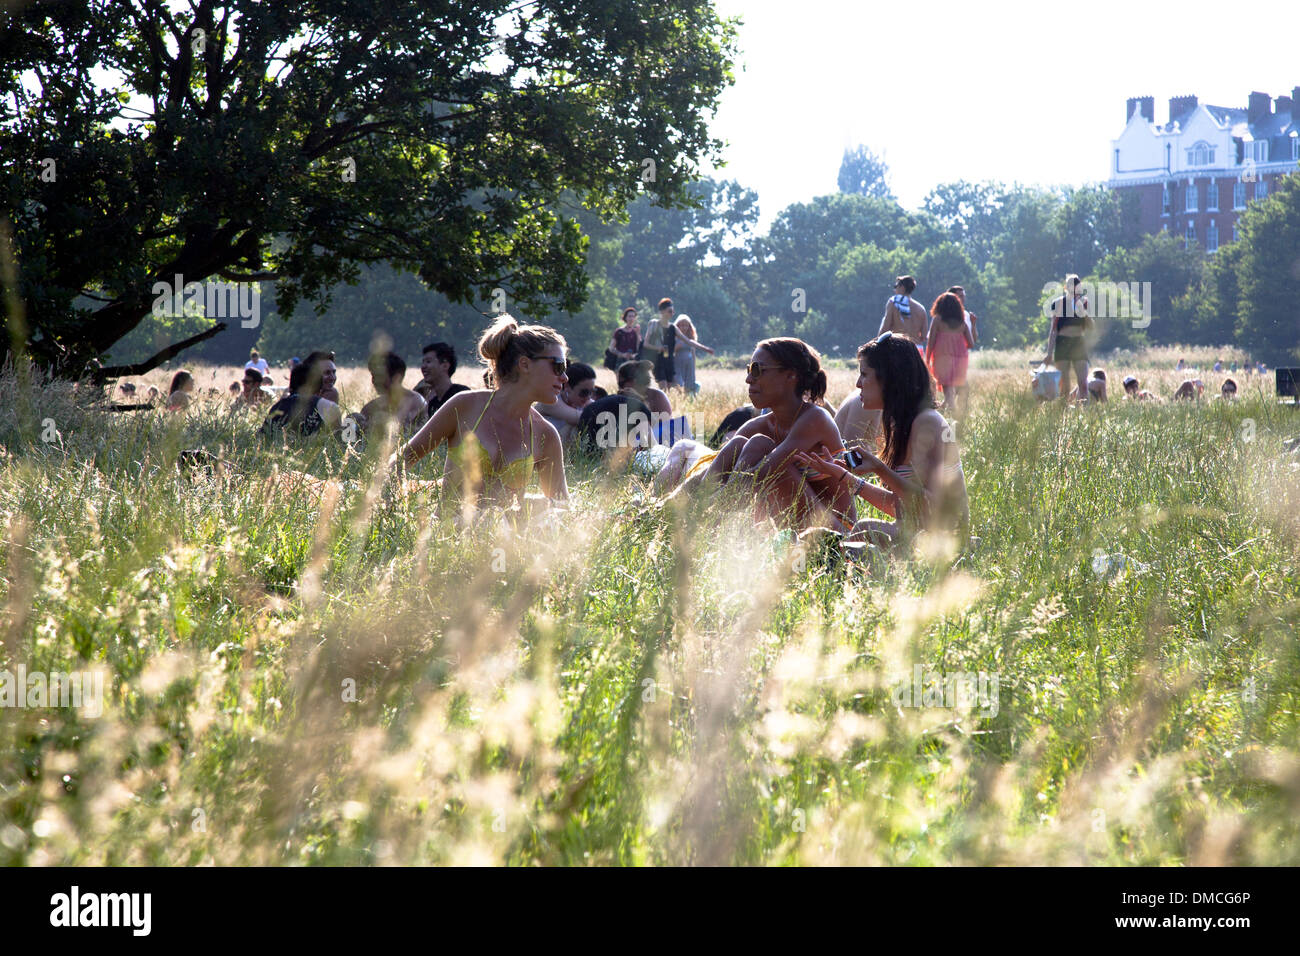 Group sitting in the grass on a sunny day, Hampstead Heath, London - Stock Image